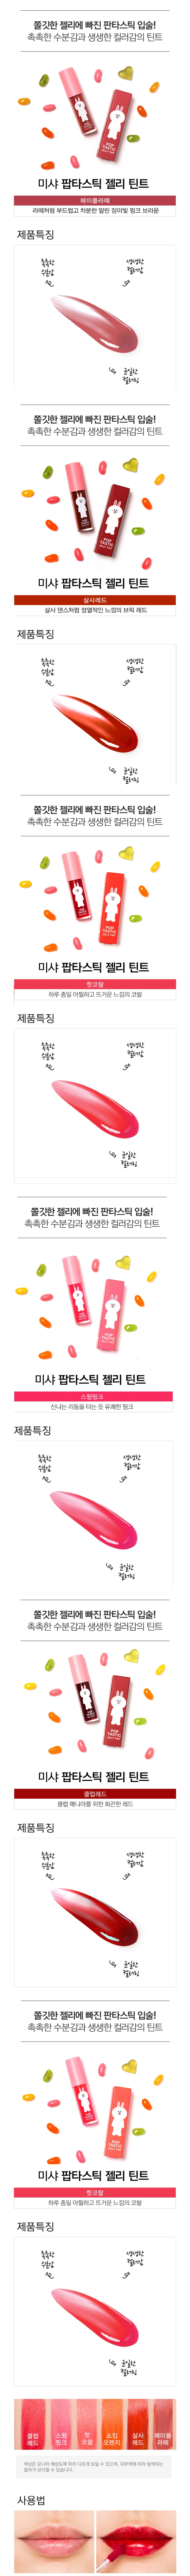 Missha x Line Friends Pop Tastic Jelly Tint